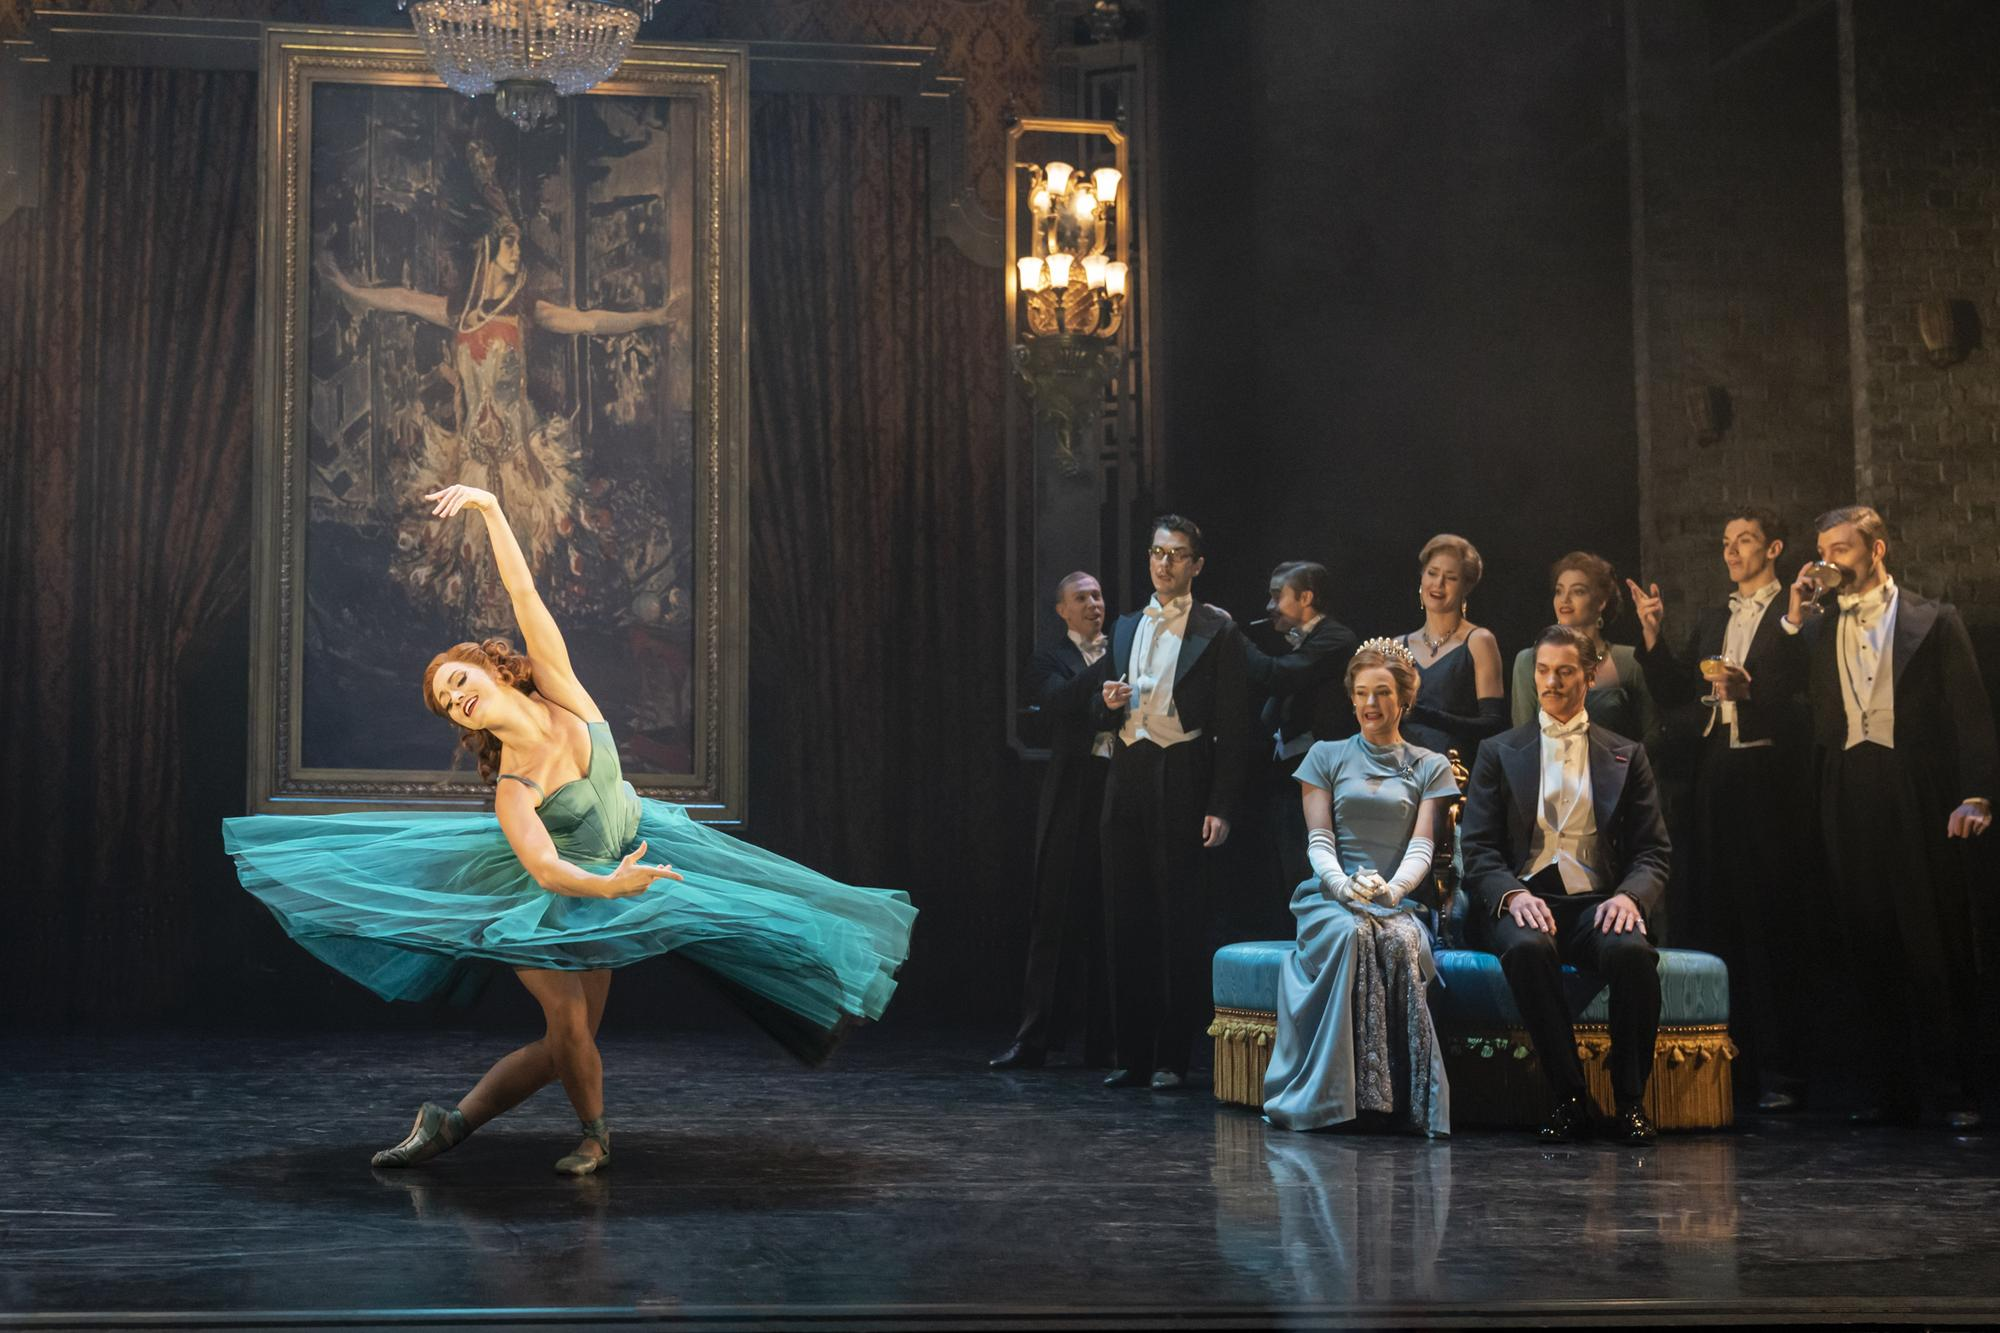 Ballet legend Sir Matthew Bourne comes to The Kings Theatre, Southsea - and win tickets for the day